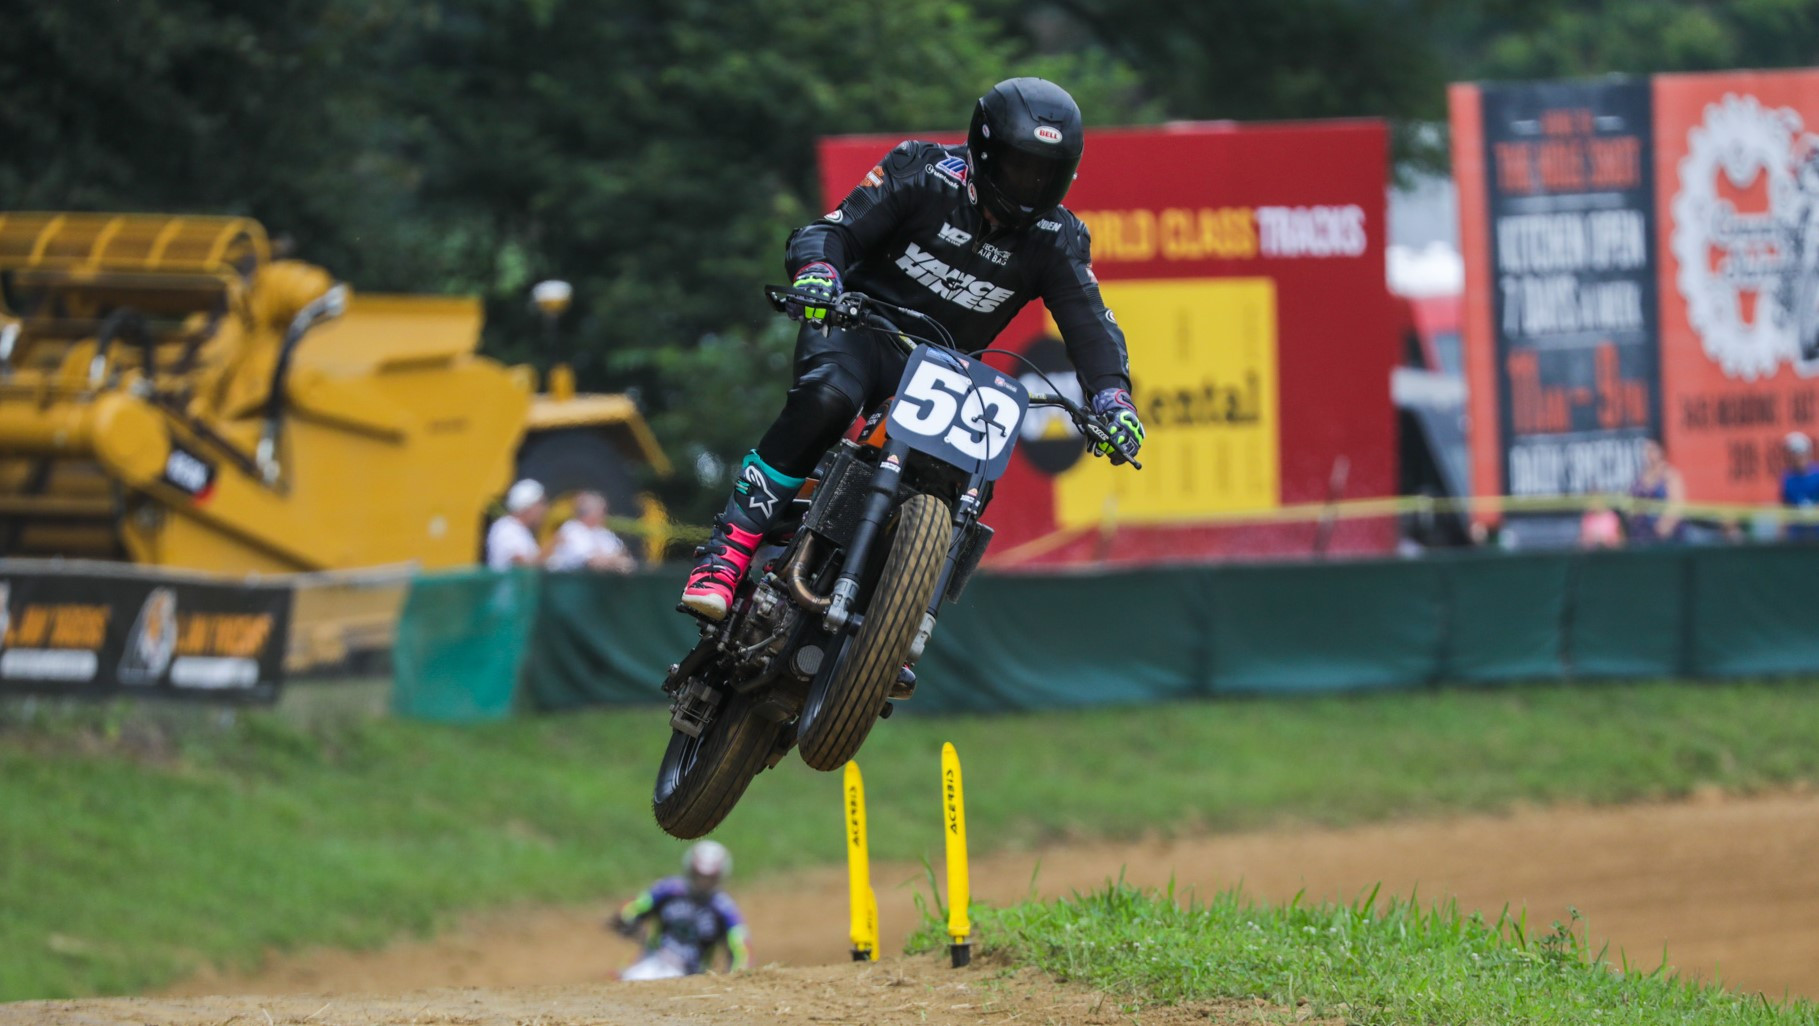 Hayden Gillim (59) in action on a Vance & Hines-backed Harley-Davidson at the Peoria TT. Photo by Scott Hunter, courtesy AFT.